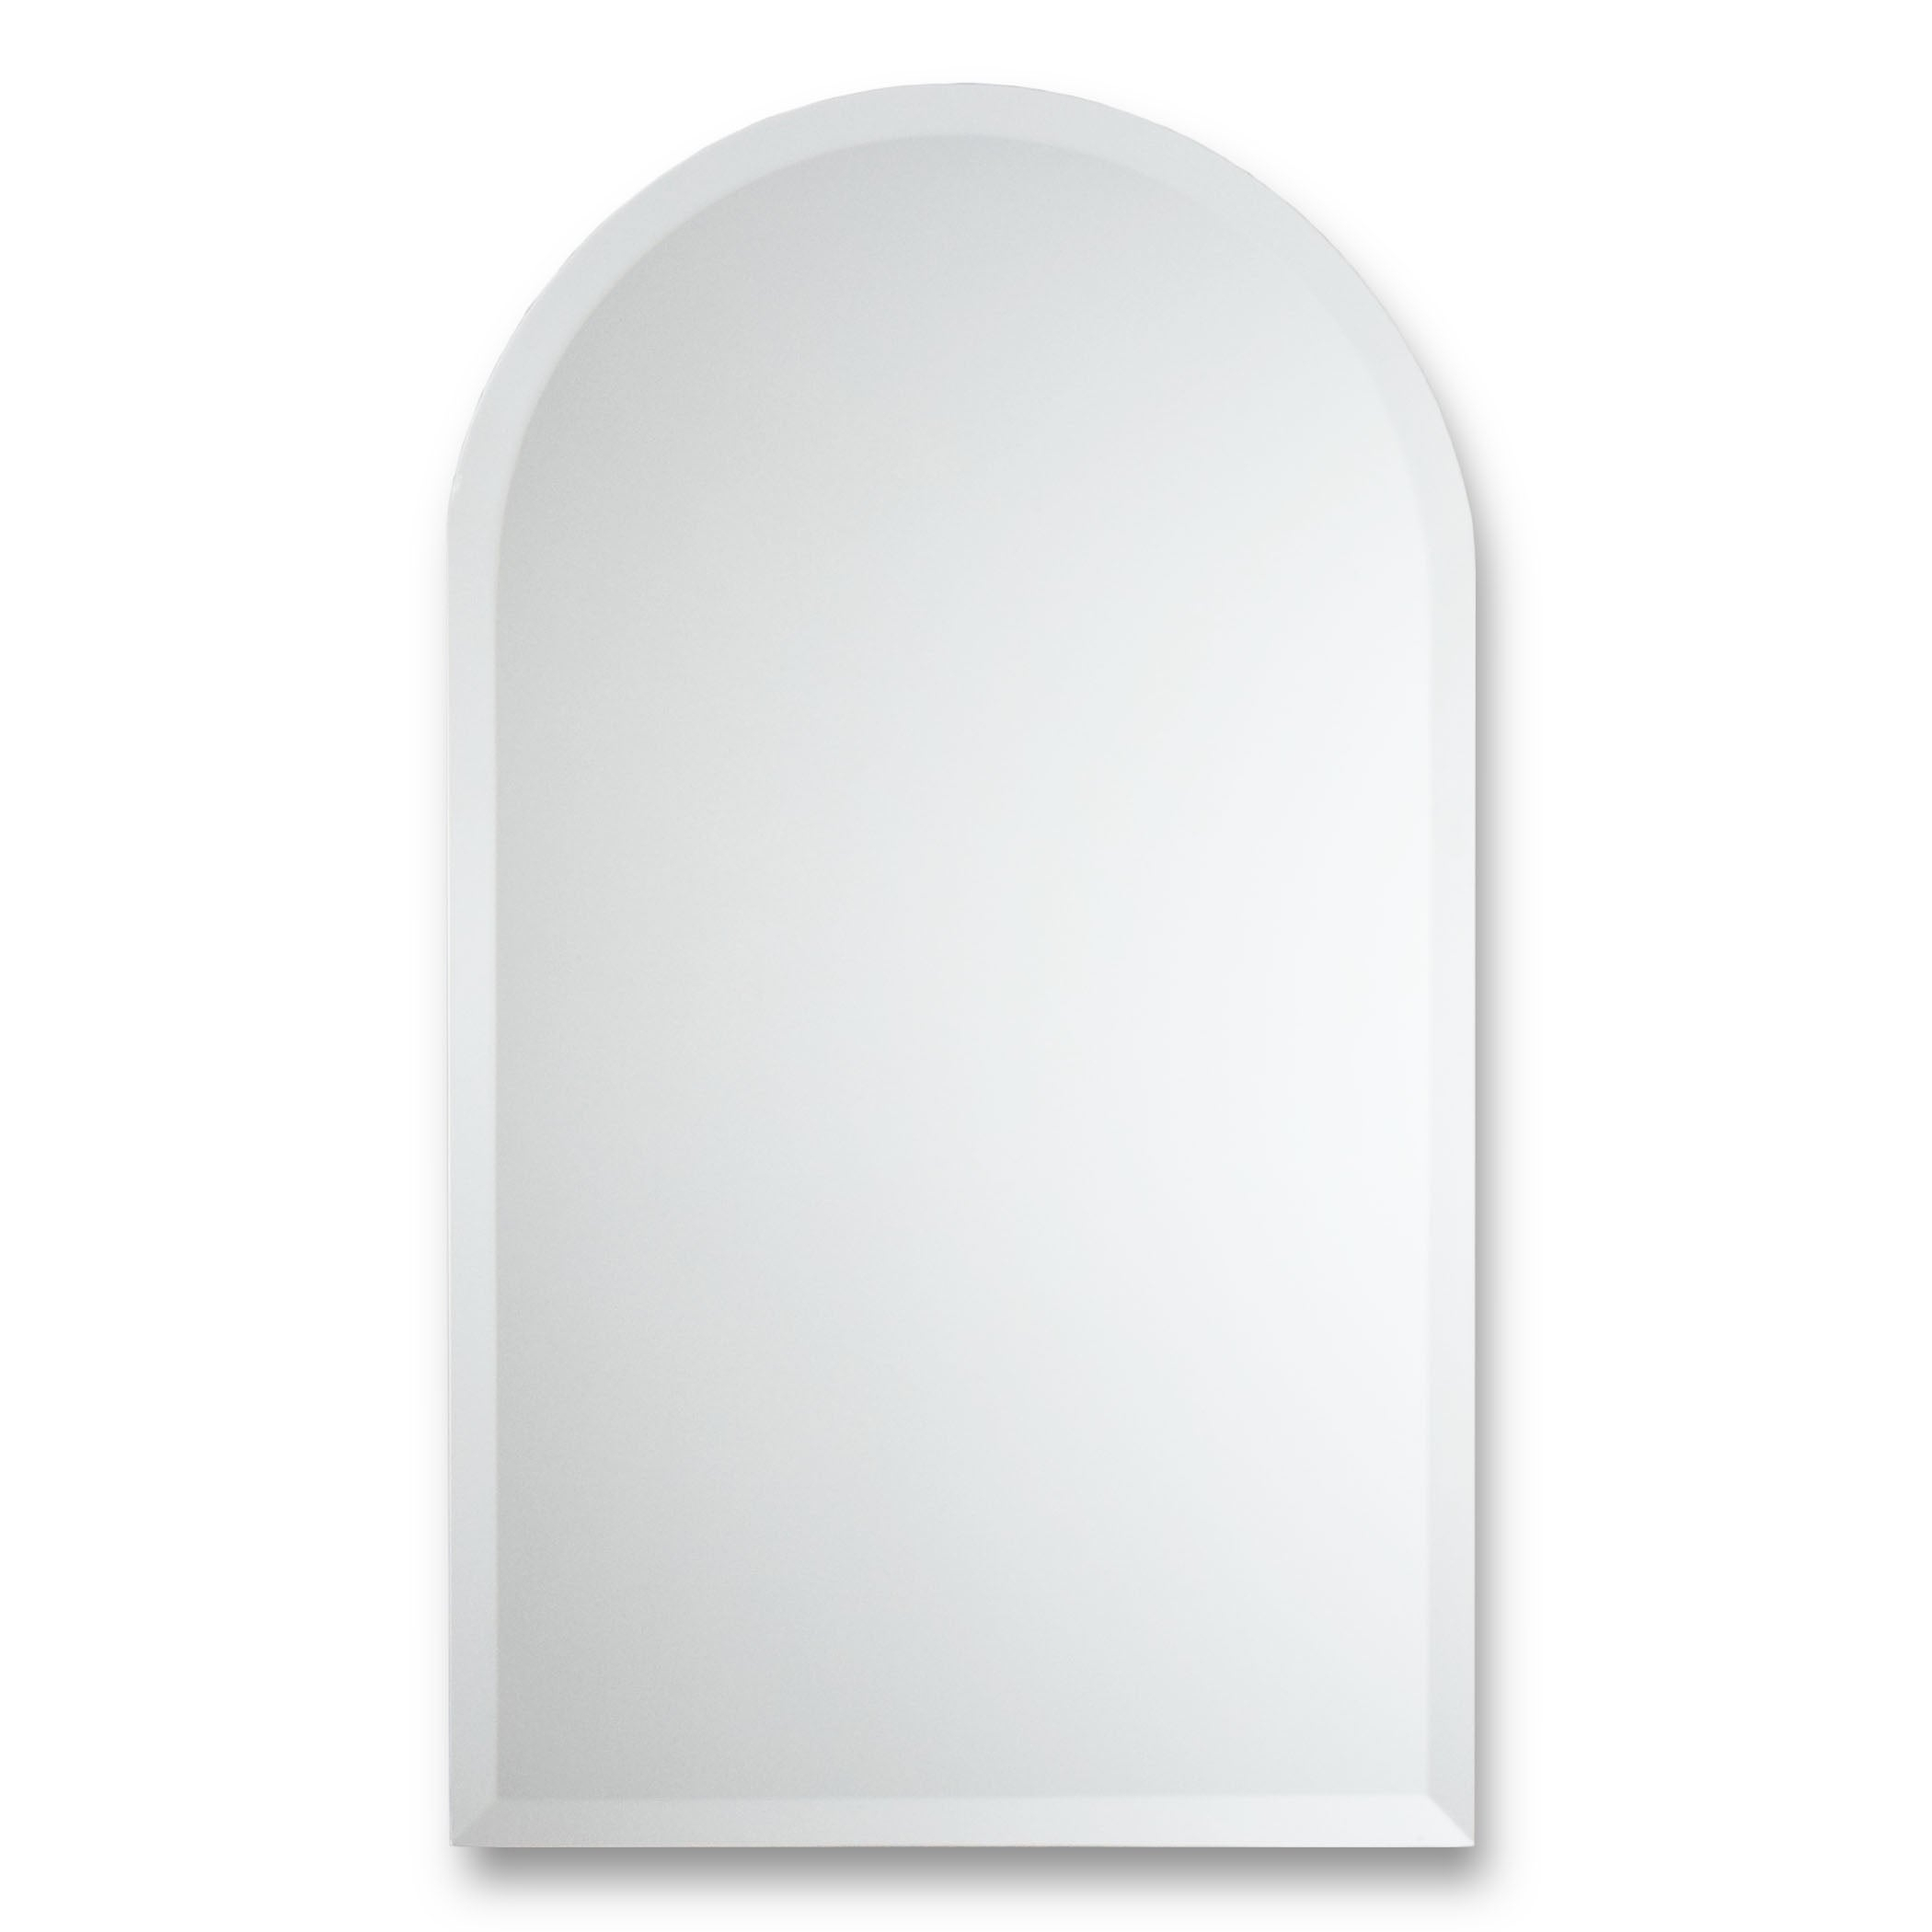 Arch Crowned Top, Wall Mirror | Shop Online At Overstock Inside Ekaterina Arch/crowned Top Wall Mirrors (View 12 of 30)